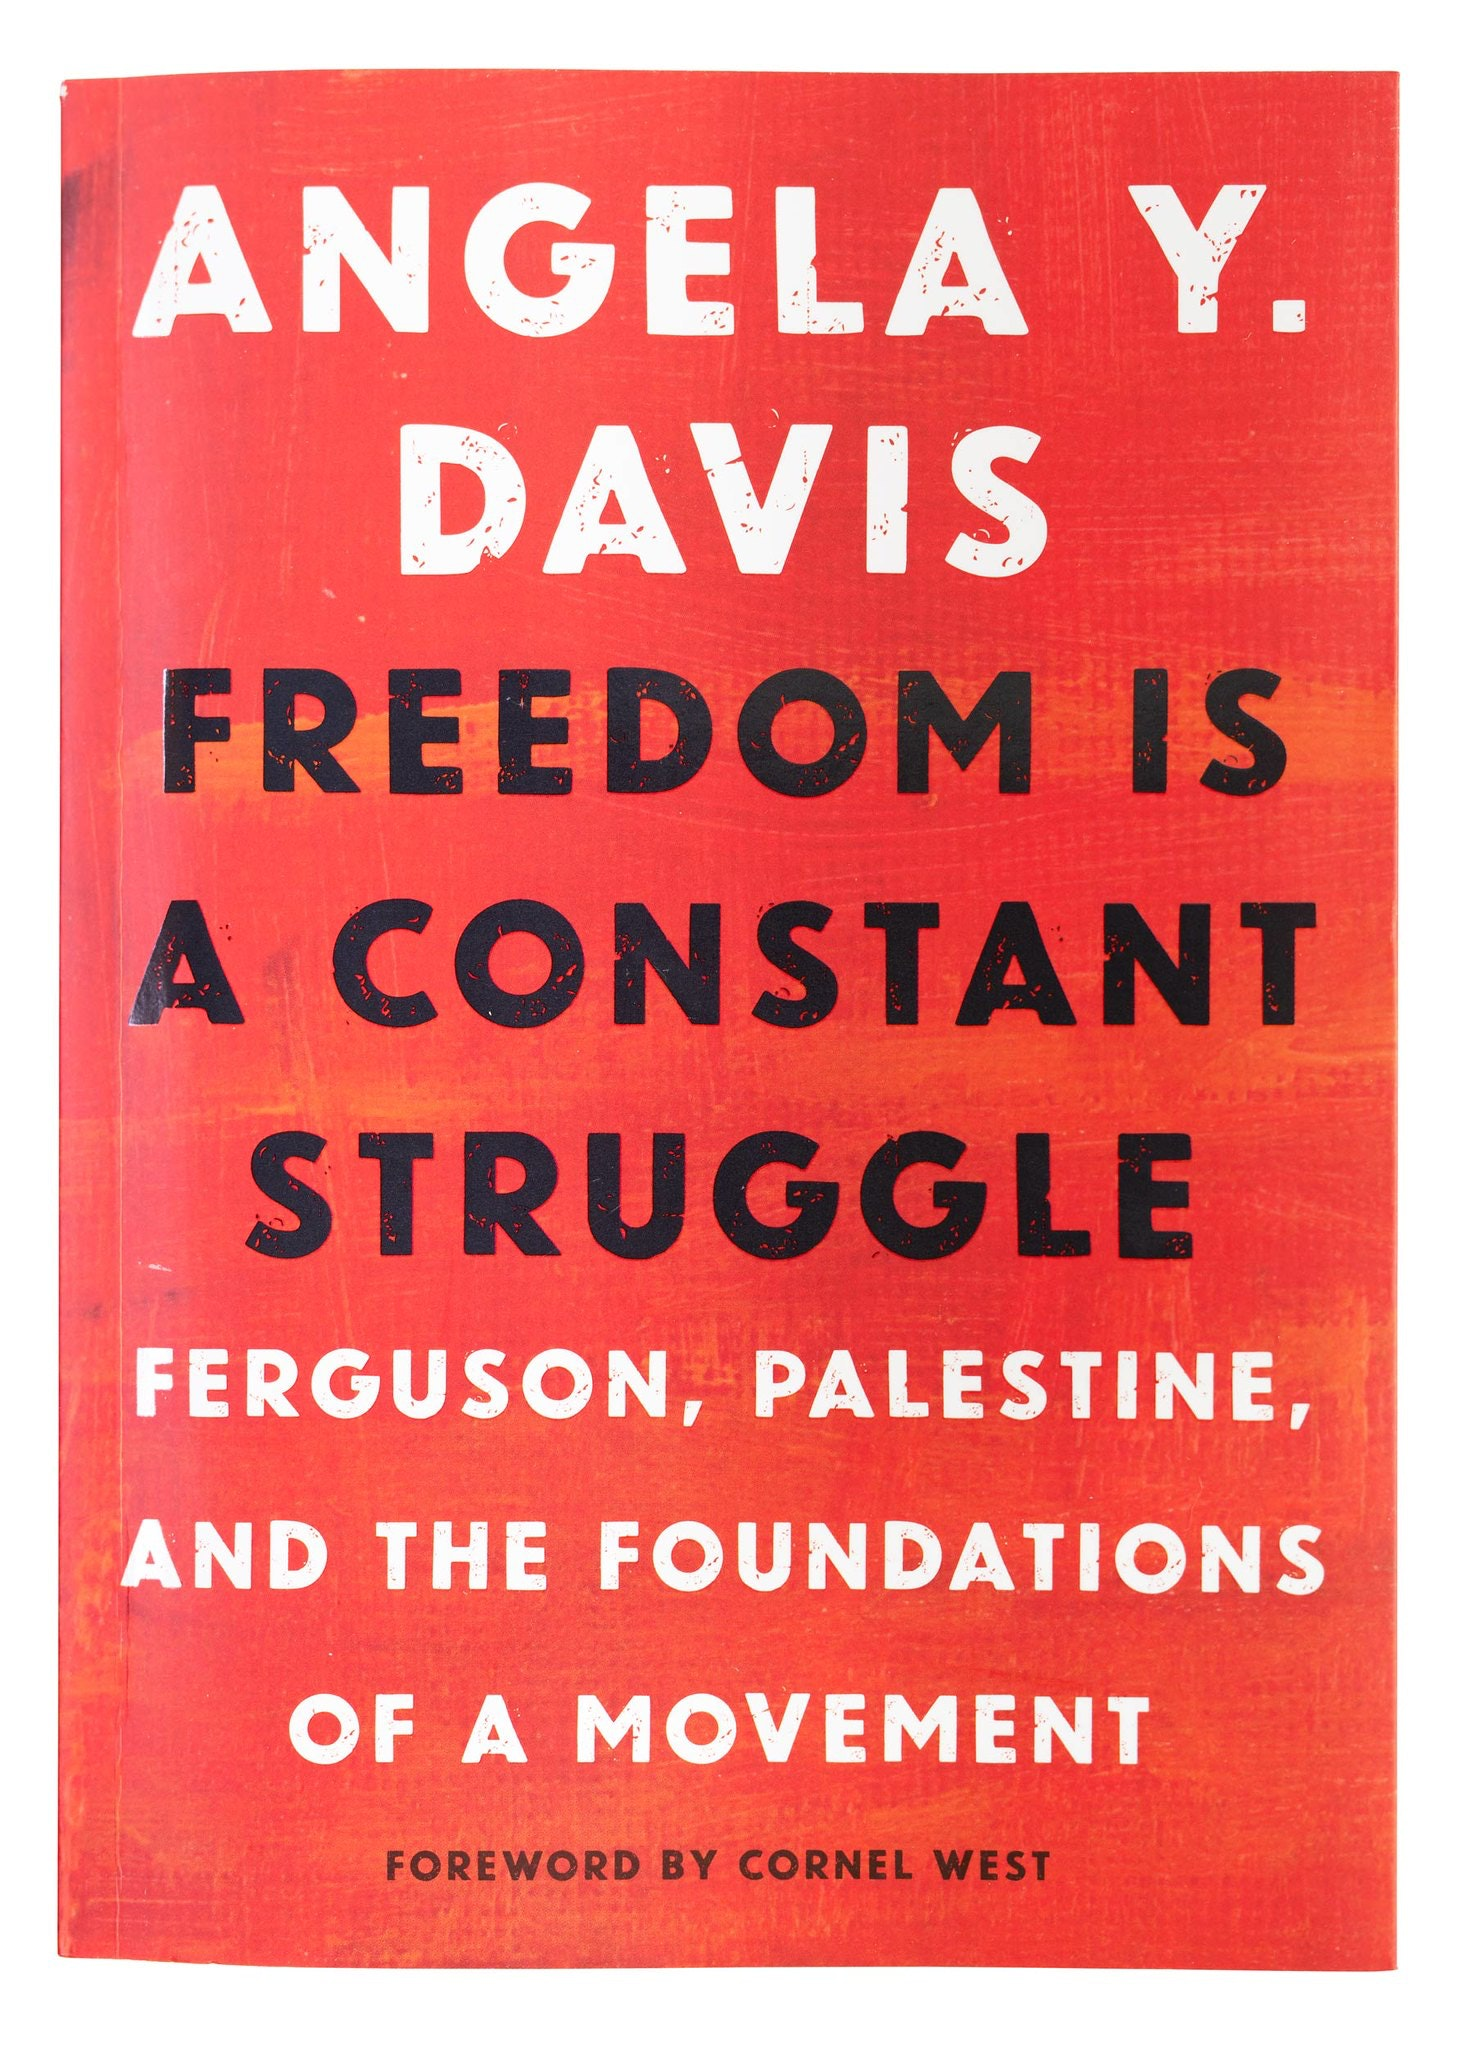 """Red book cover for Angela Davis' """"Freedom is a Constant Struggle."""""""